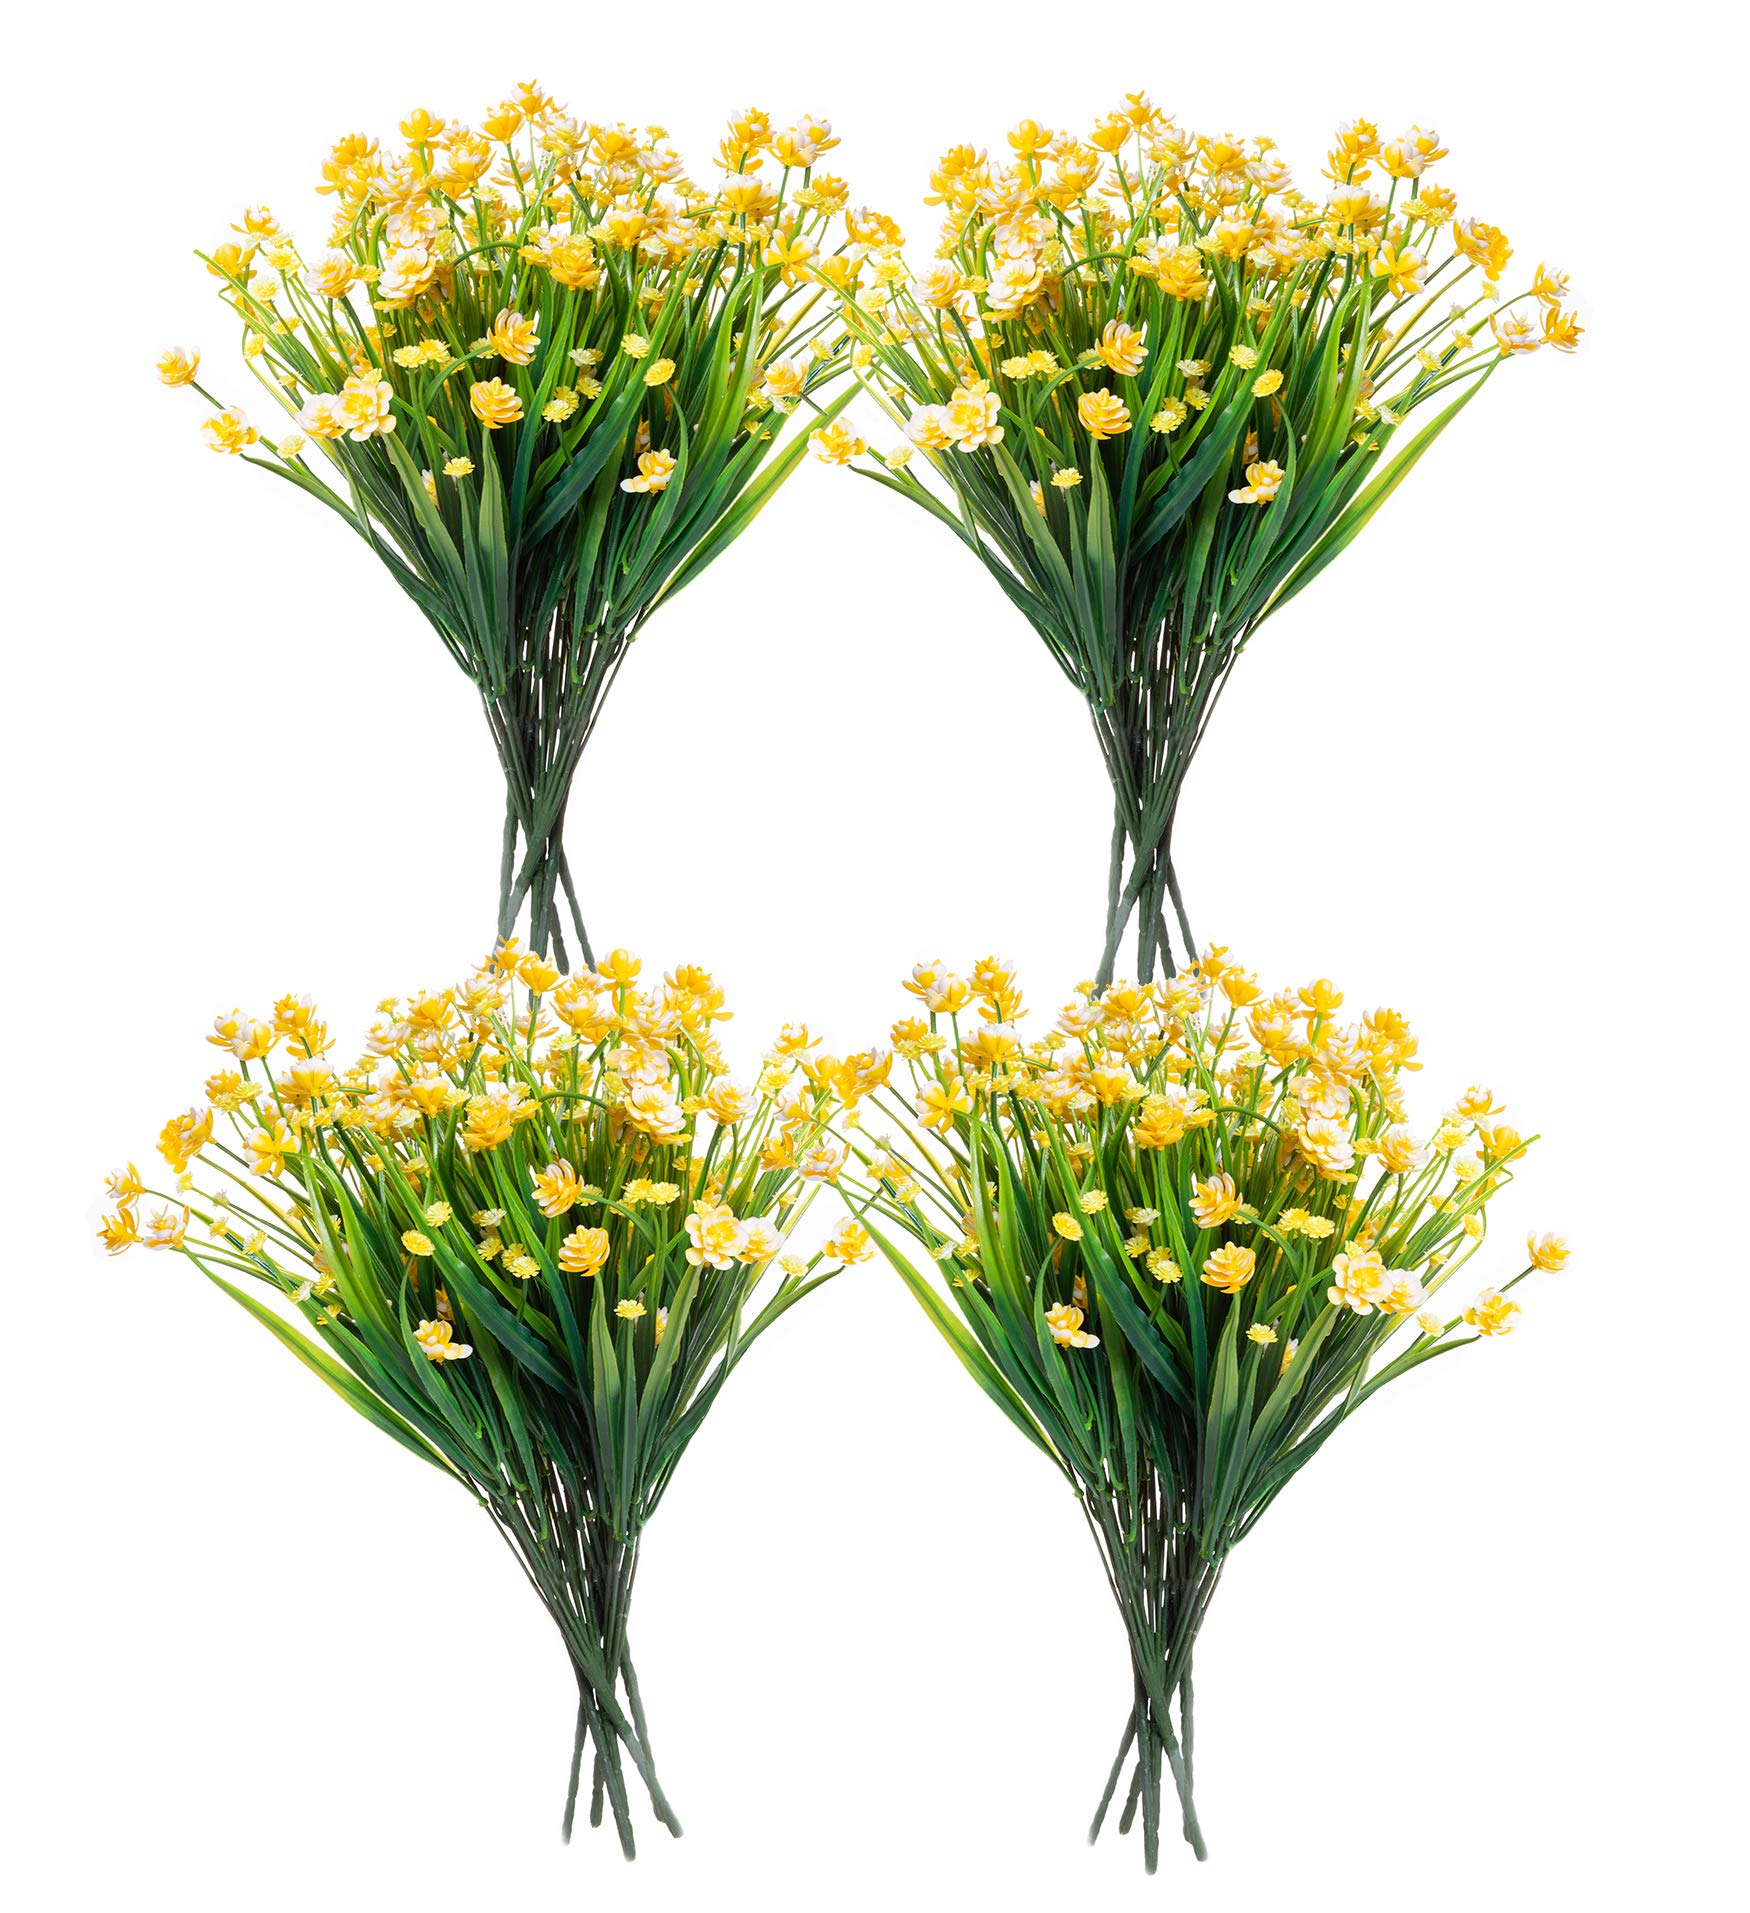 Red Co. Faux Floral Bouquet, Artificial Fake Greenery Flowers for Home and Outdoor Garden Decor, Set of 4 Bunches (6 Picks Each), Spring Yellow